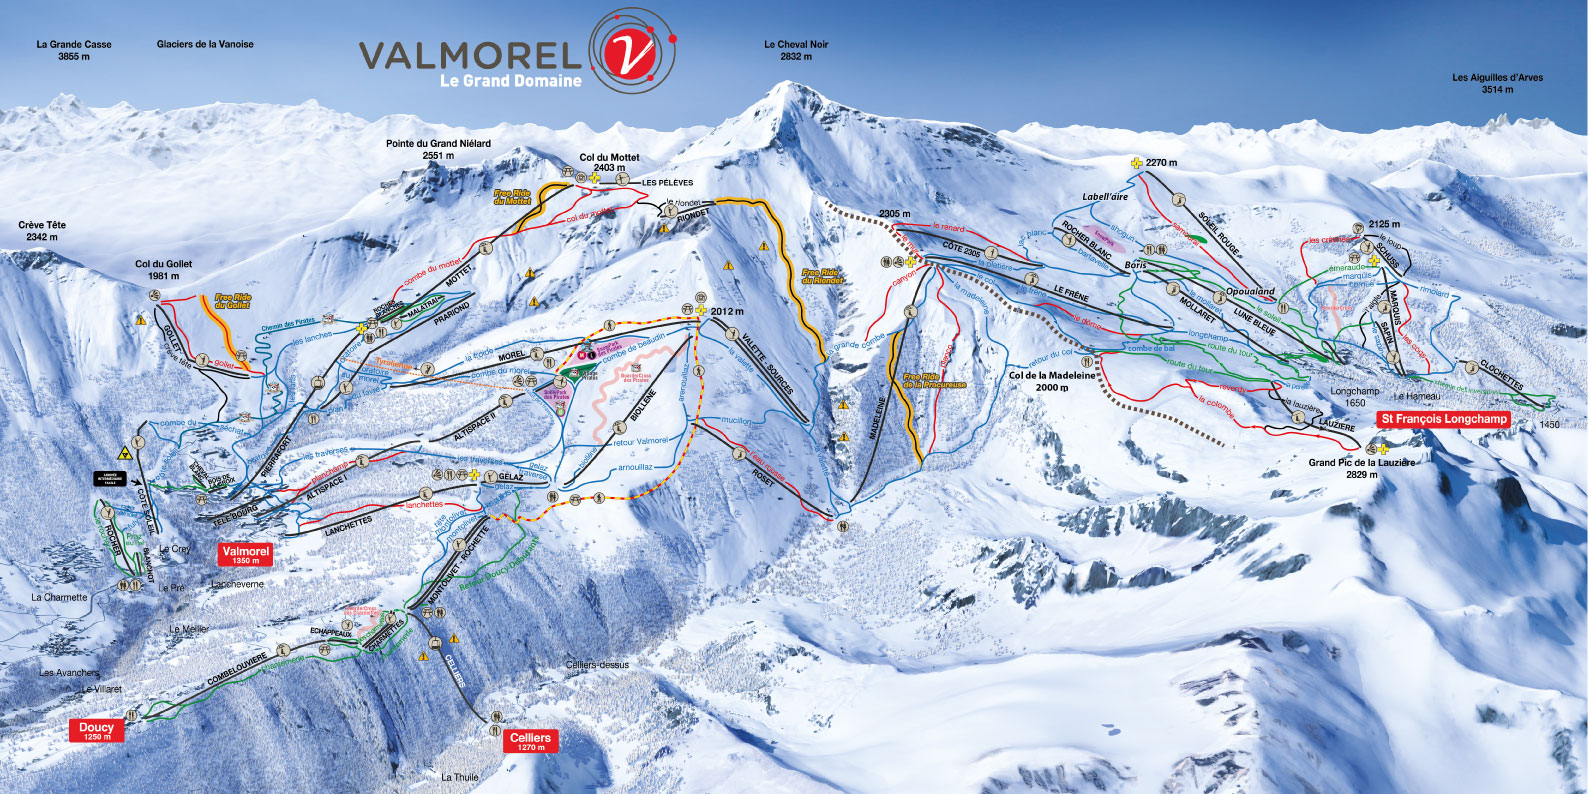 Valmorel Piste / Trail Map